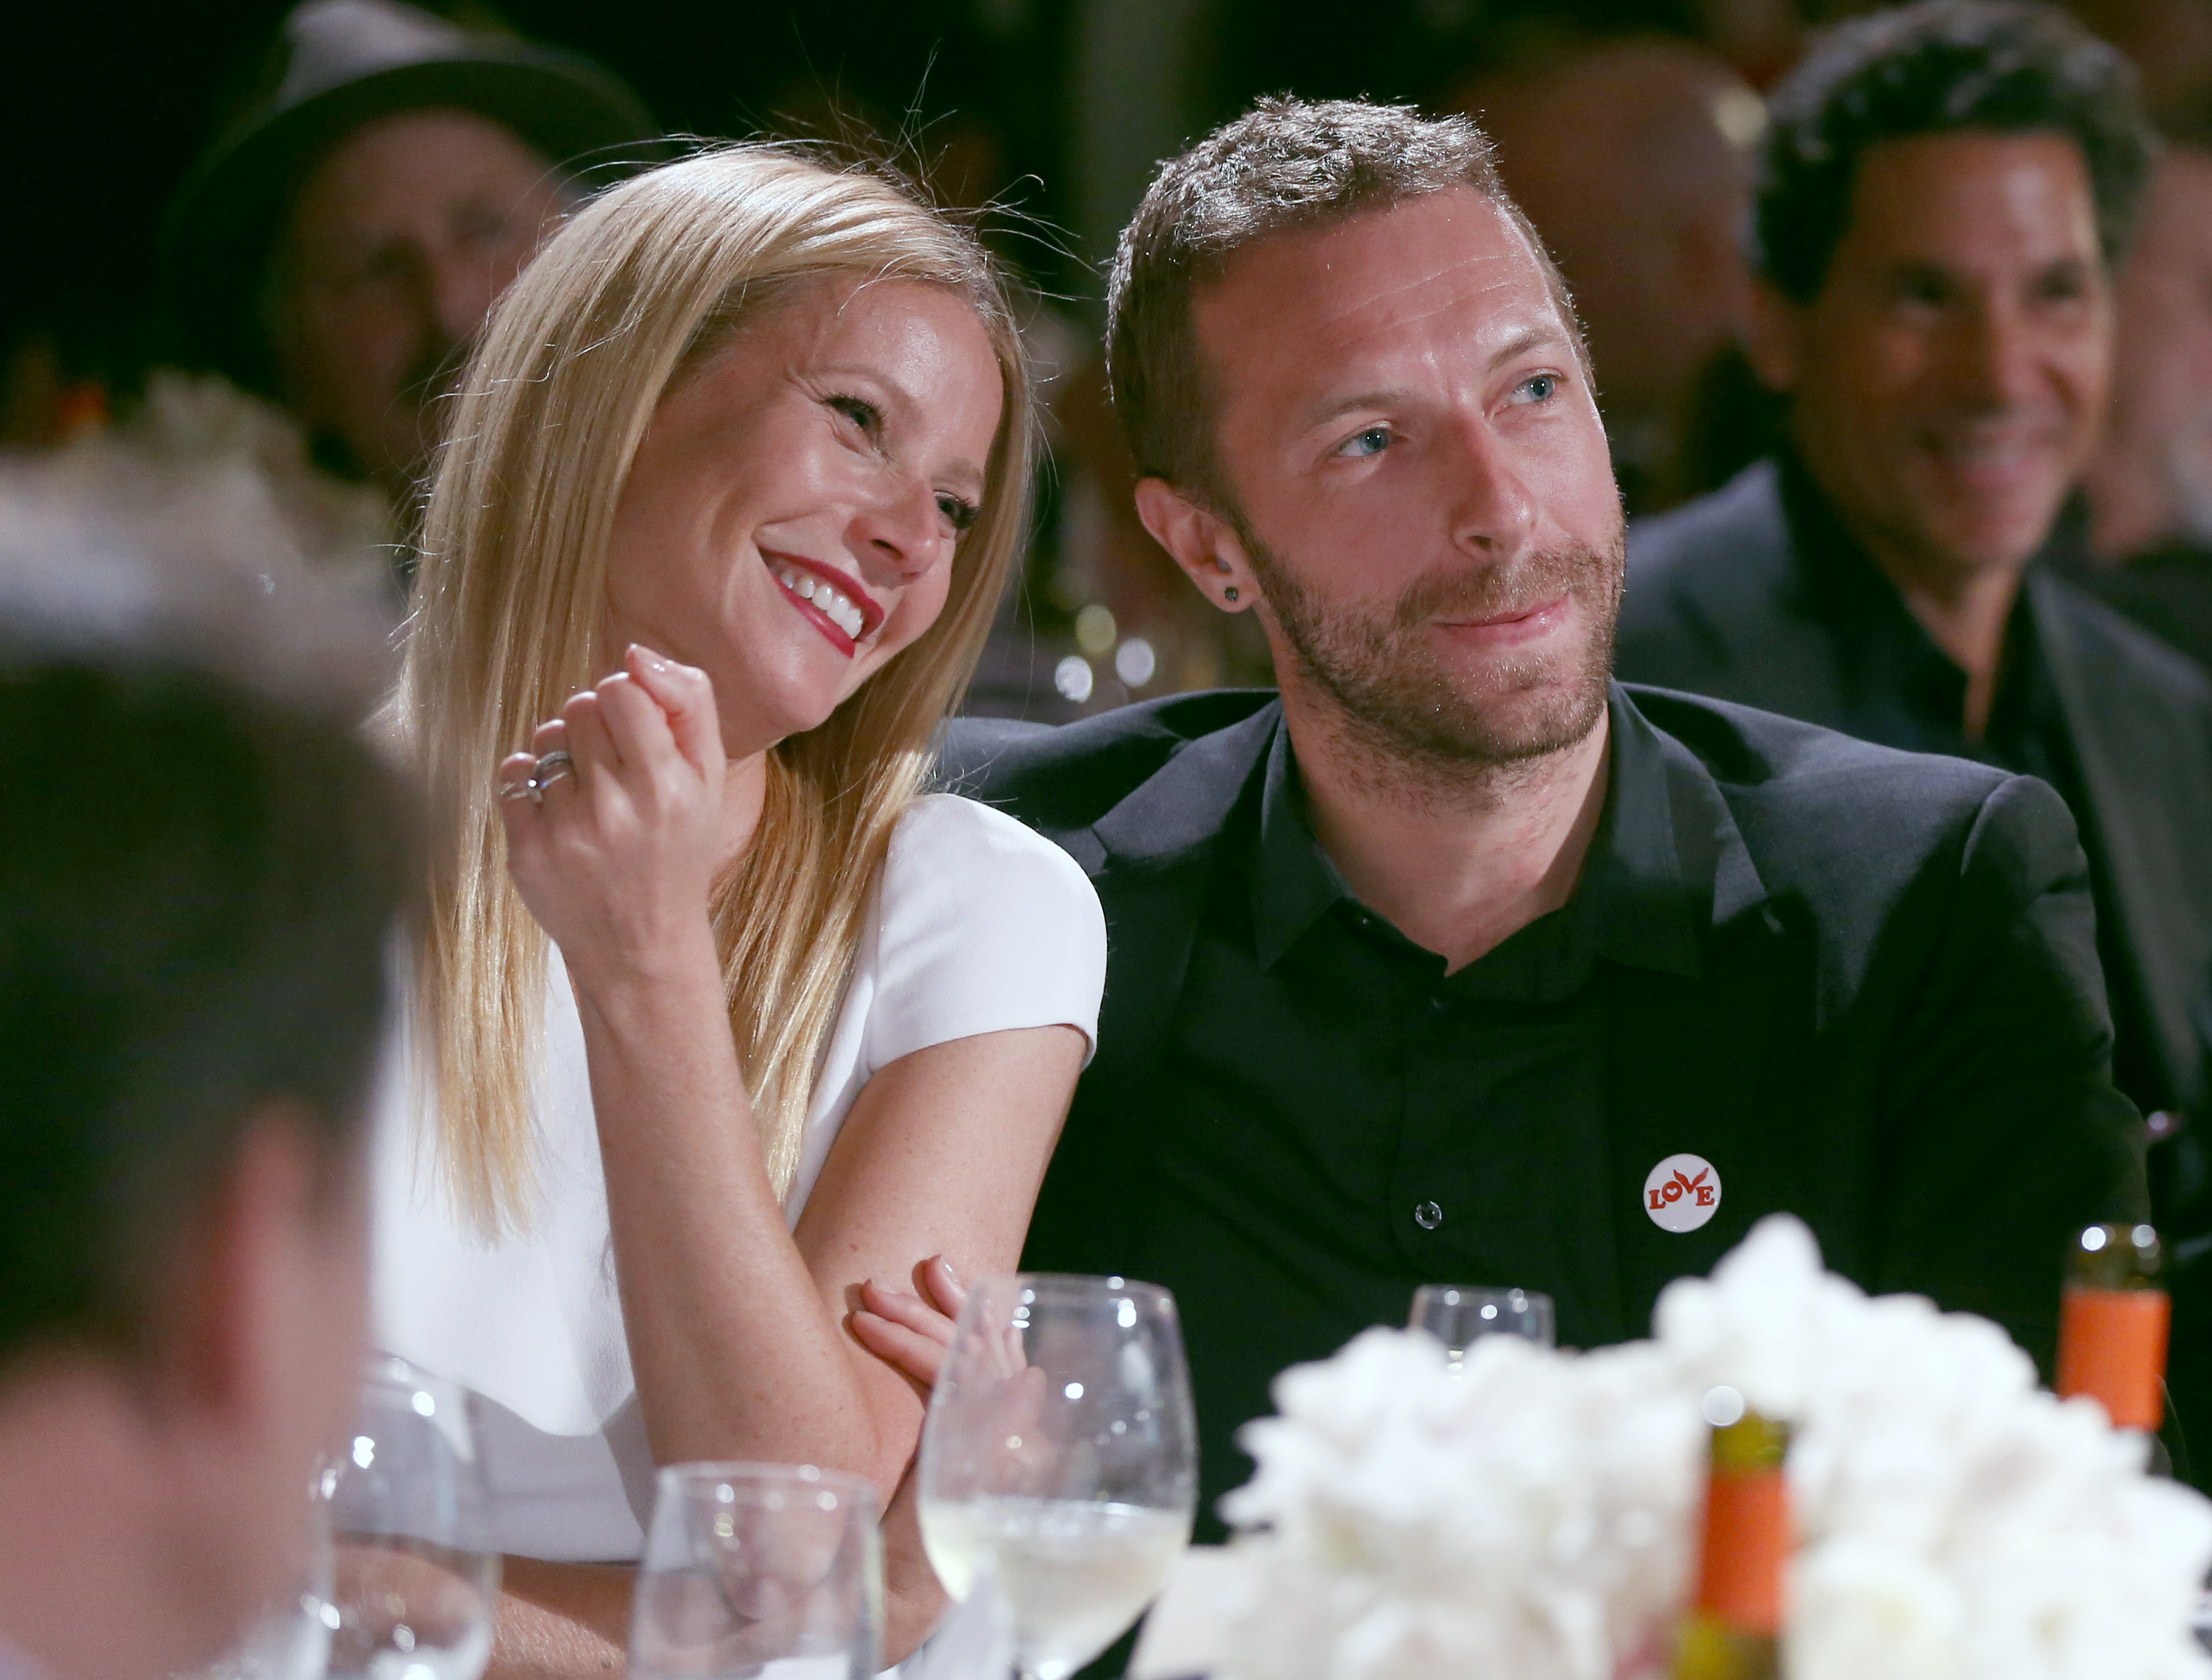 Gwyneth Paltrow and Chris Martin are seen at the Montage Hotel in Beverly Hills on Jan. 11, 2014